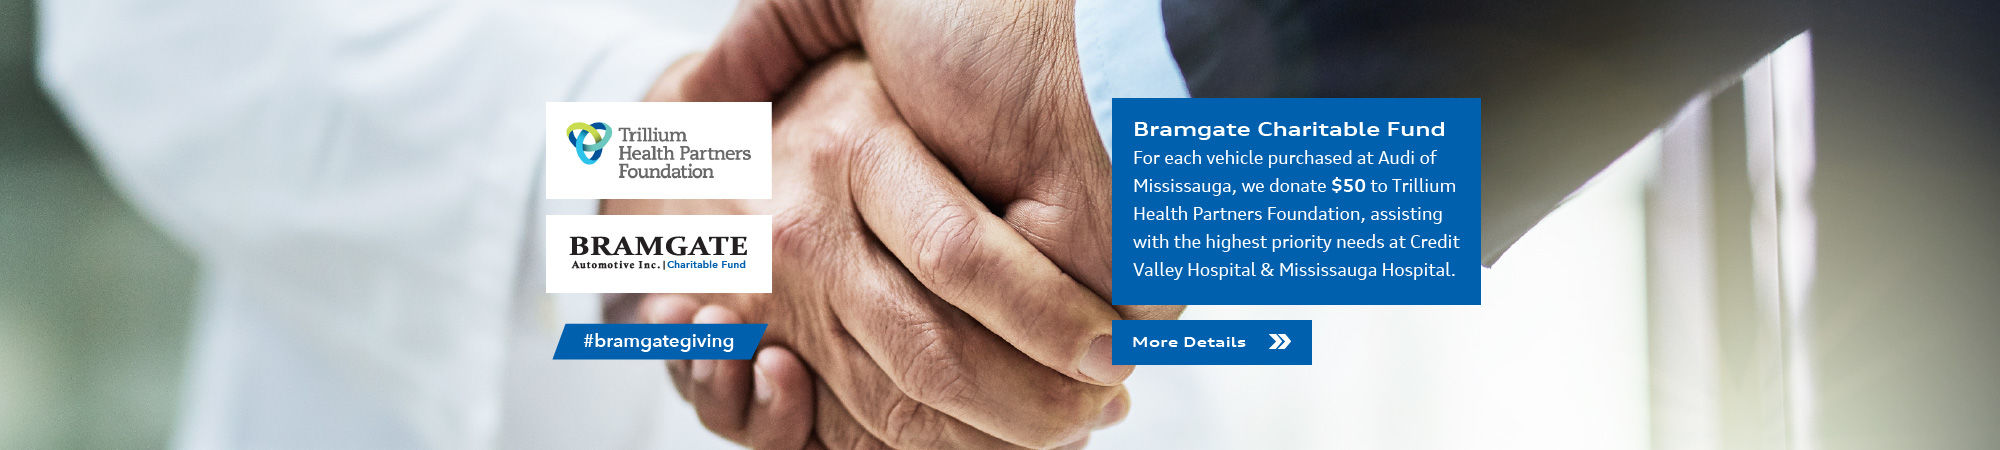 Bramgate Charitable Fund